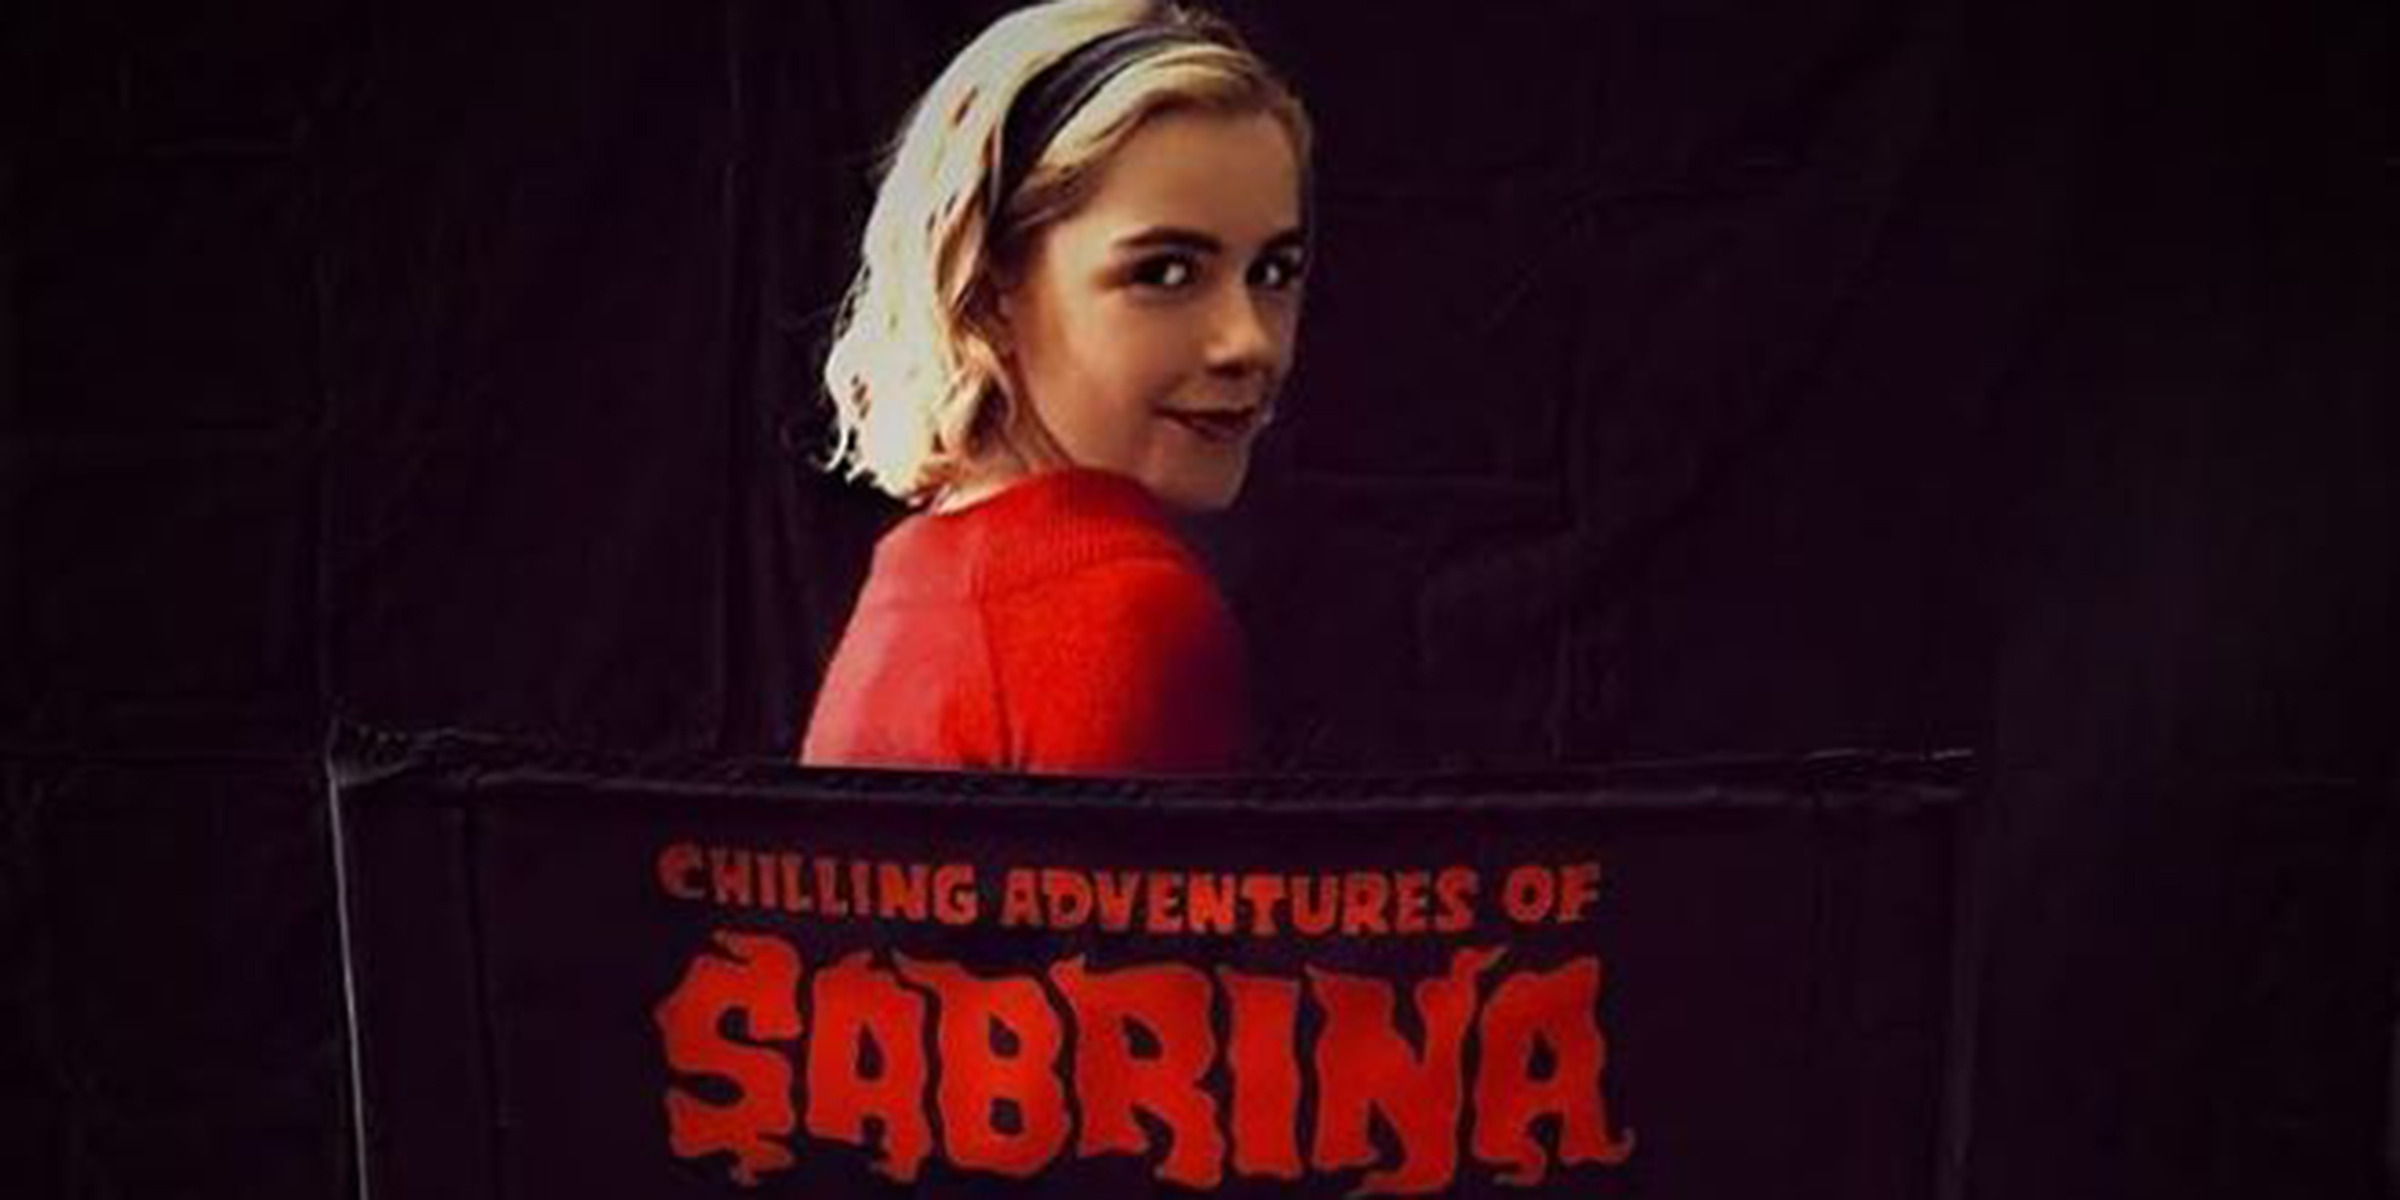 New Photos From Chilling Adventures Of Sabrina Are Giving Us